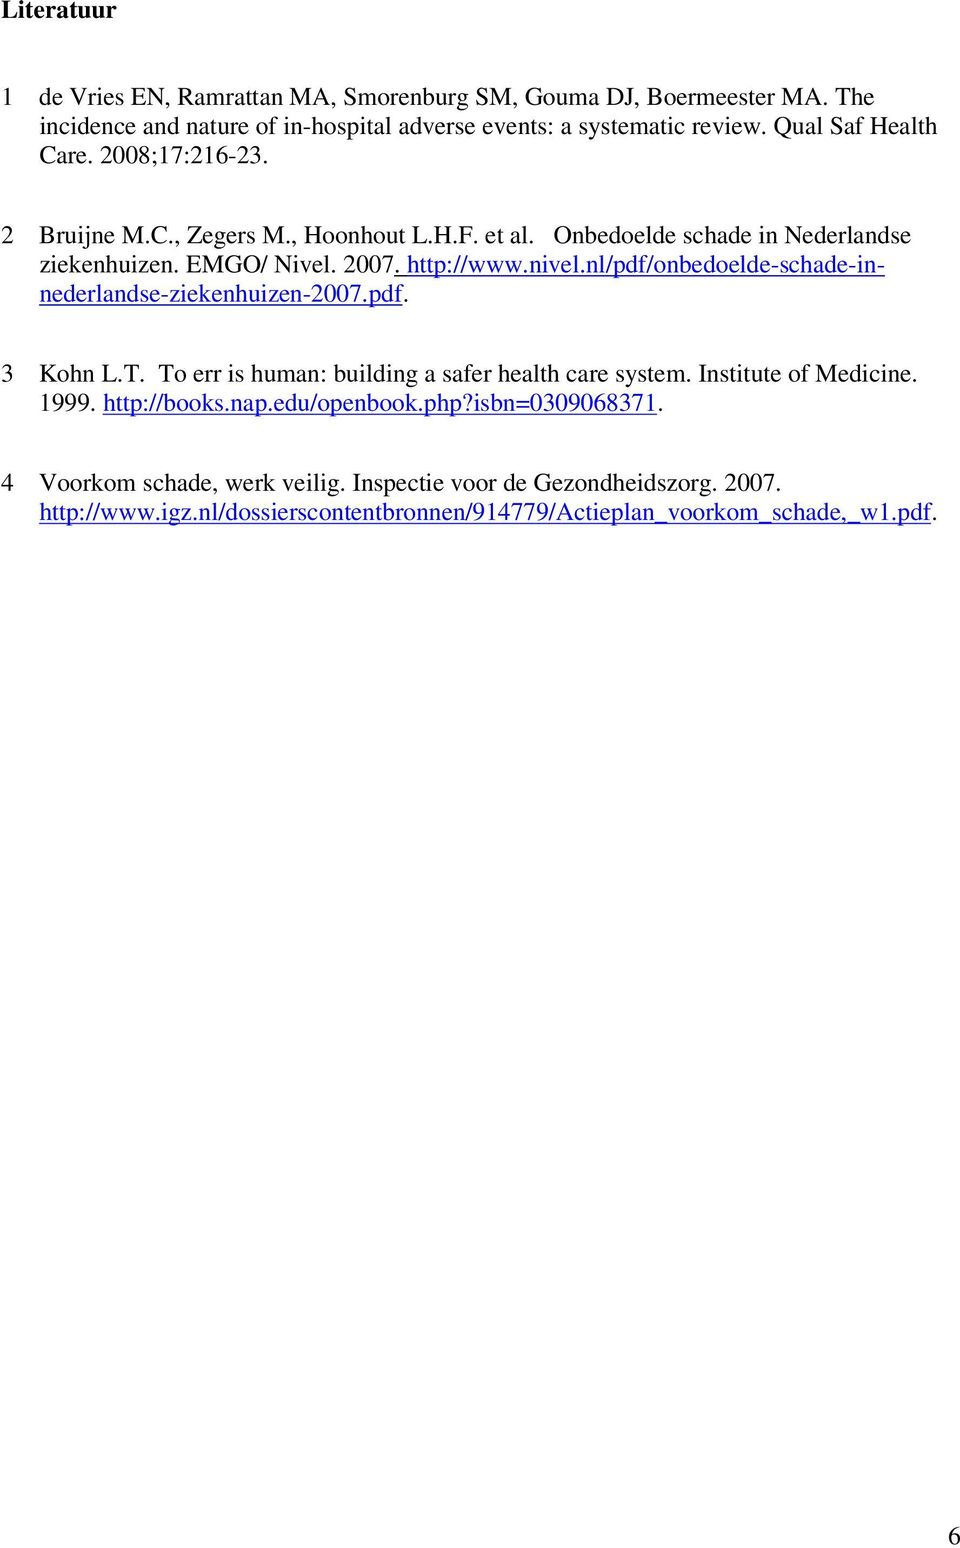 nl/pdf/onbedoelde-schade-innederlandse-ziekenhuizen-2007.pdf. 3 Kohn L.T. To err is human: building a safer health care system. Institute of Medicine. 1999. http://books.